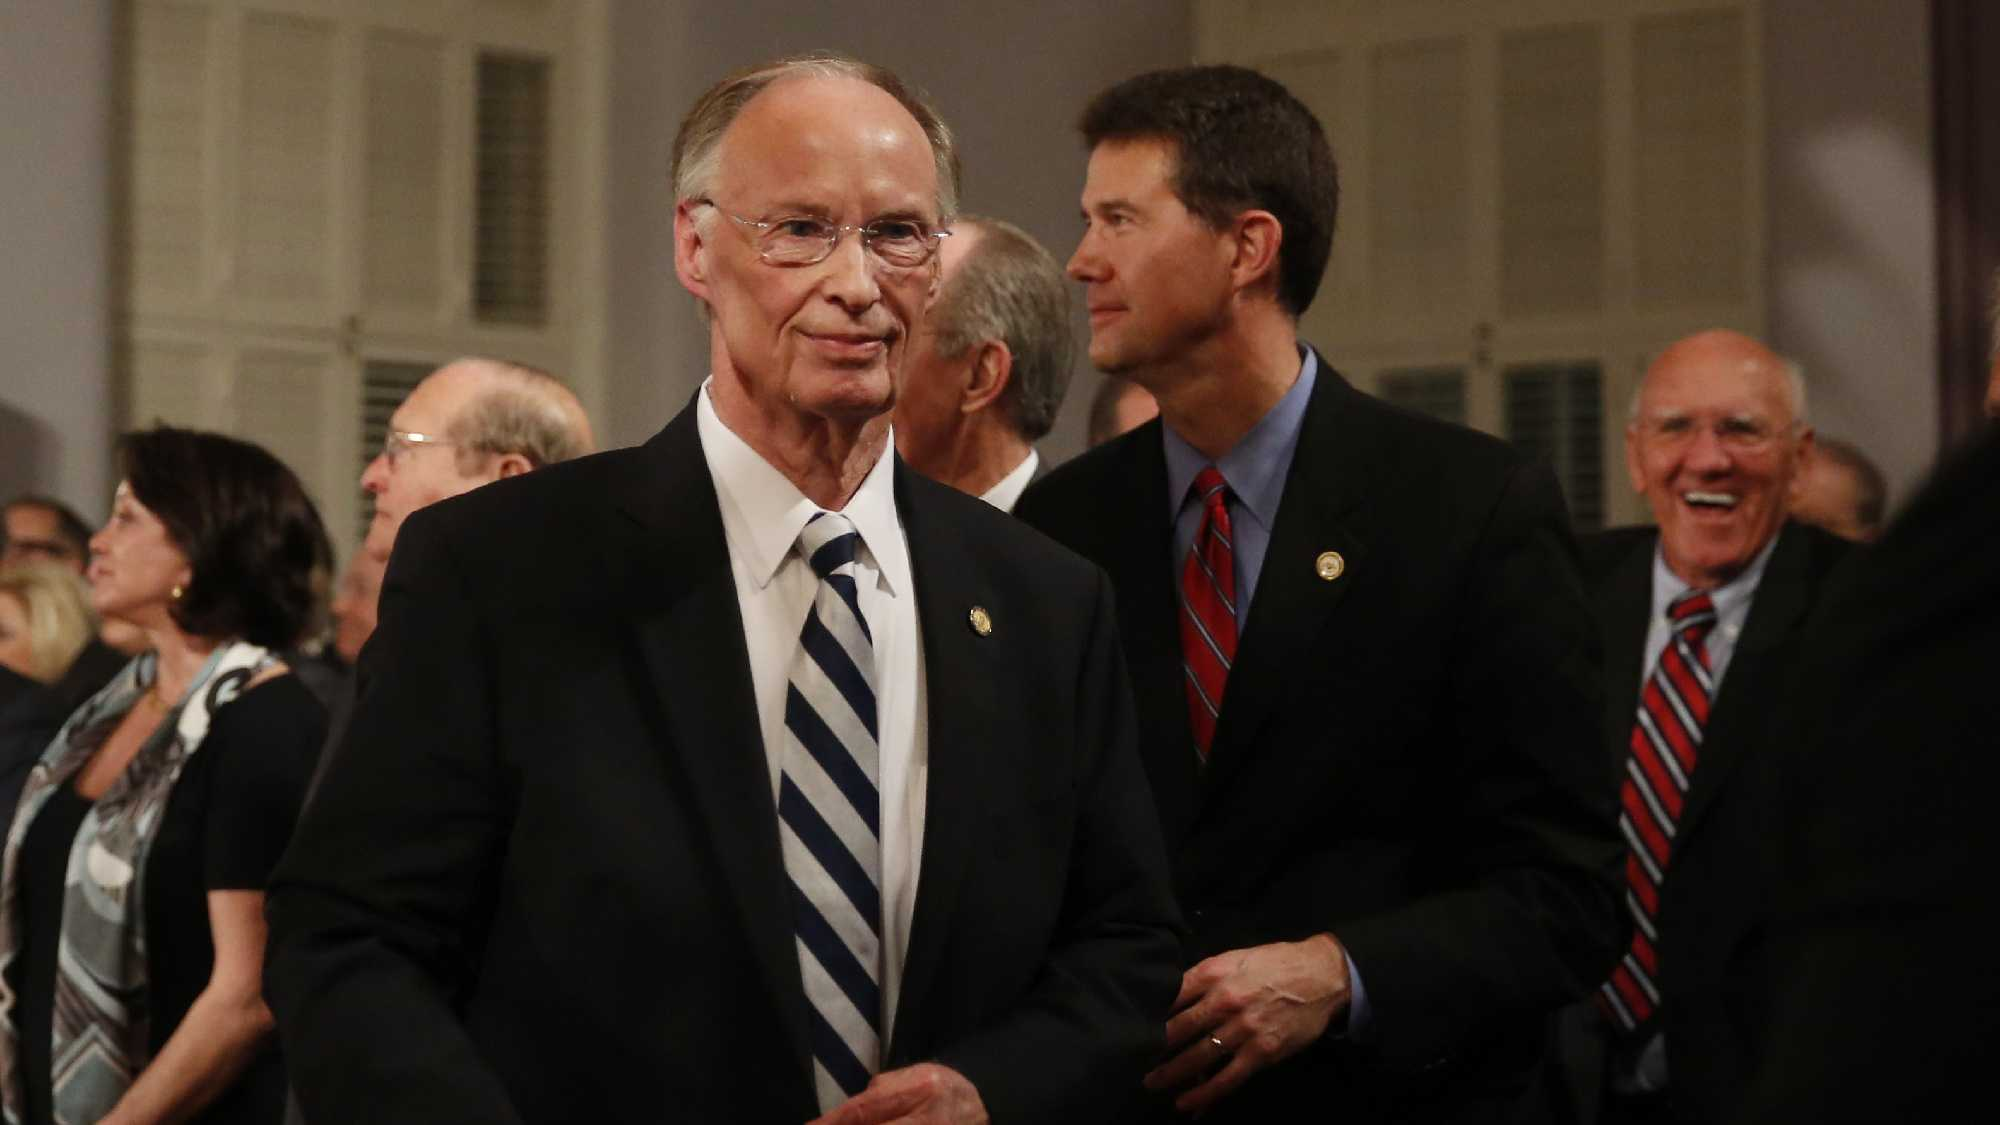 Alabama Gov. Robert Bentley walks towards the door after speaking during the annual State of the State address at the Capitol, Tuesday, Feb. 2, 2016, in Montgomery, Ala.